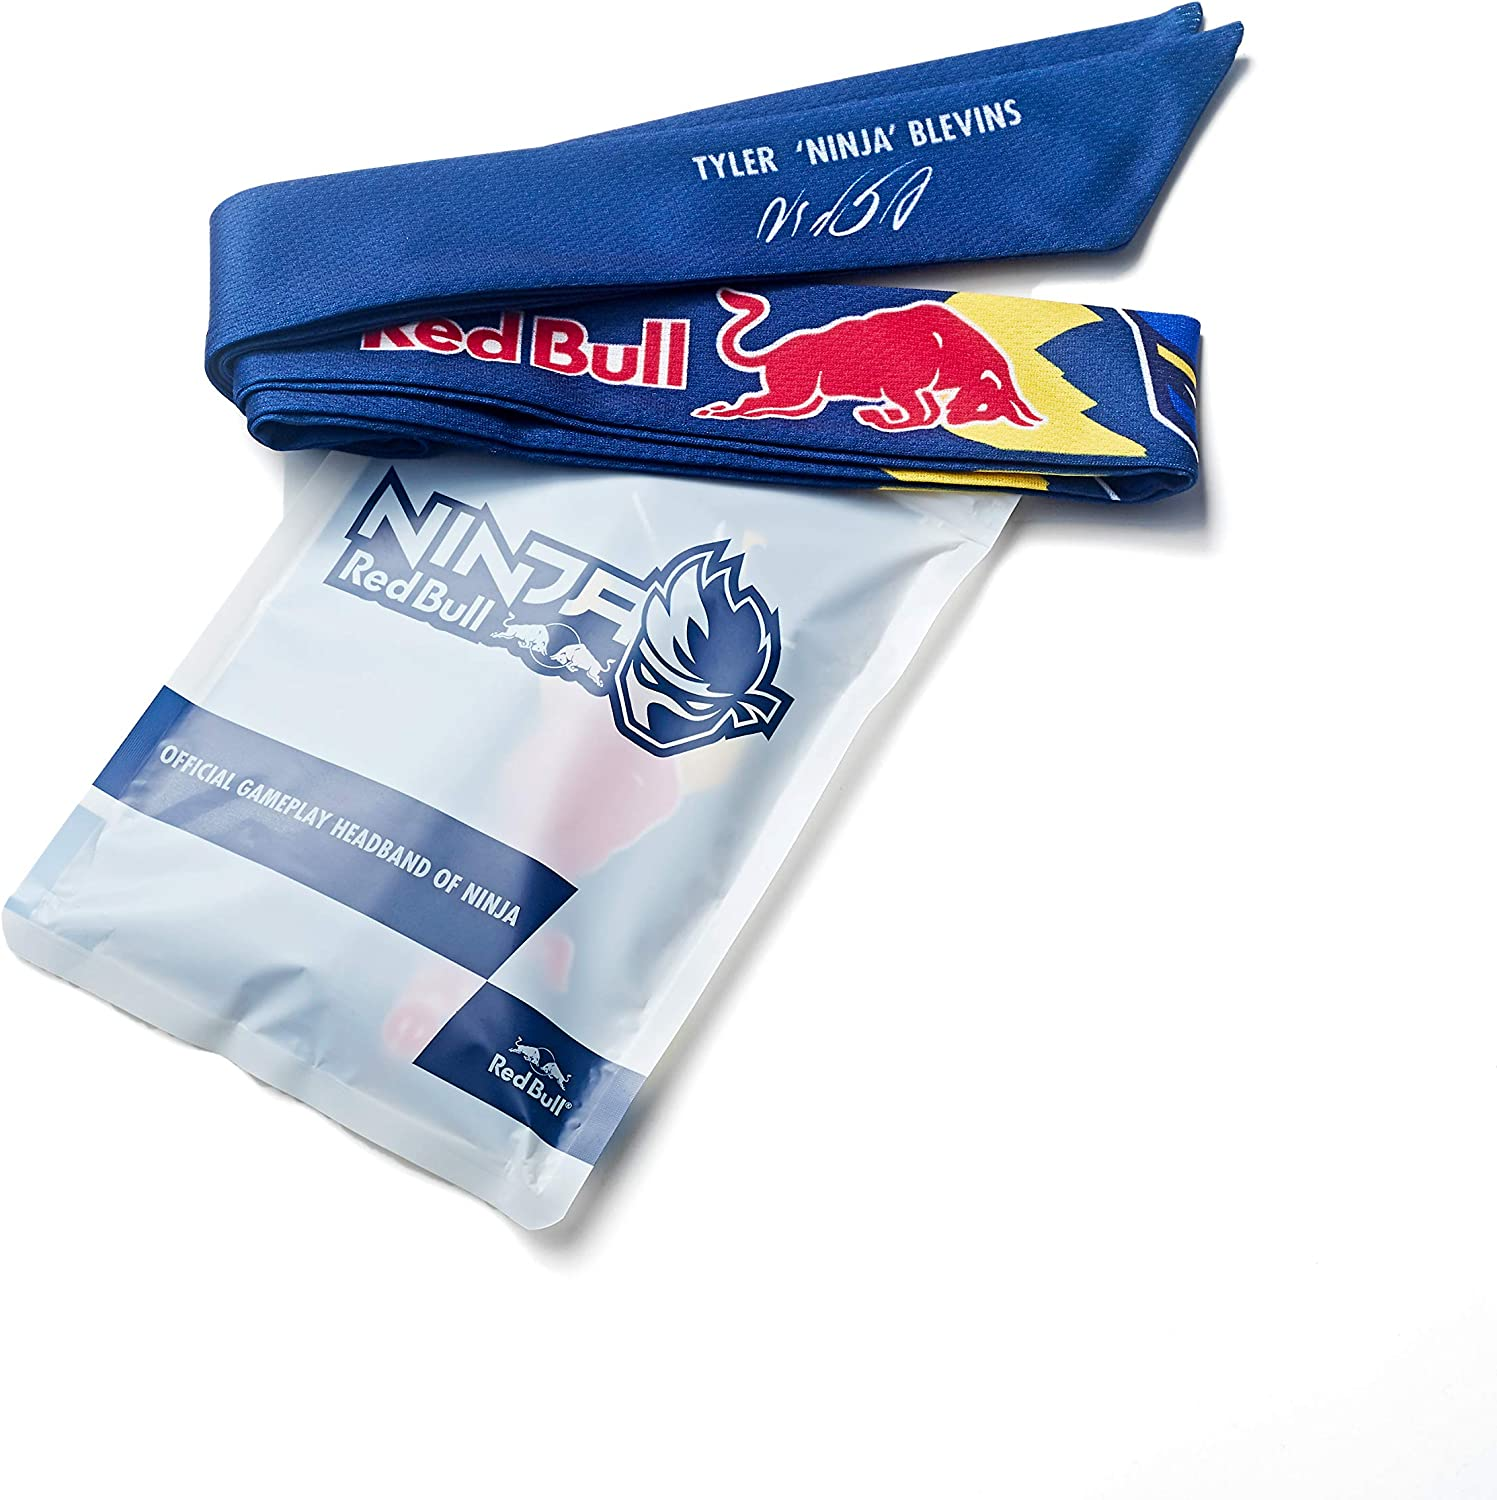 Official Headband of Ninja x Redbull